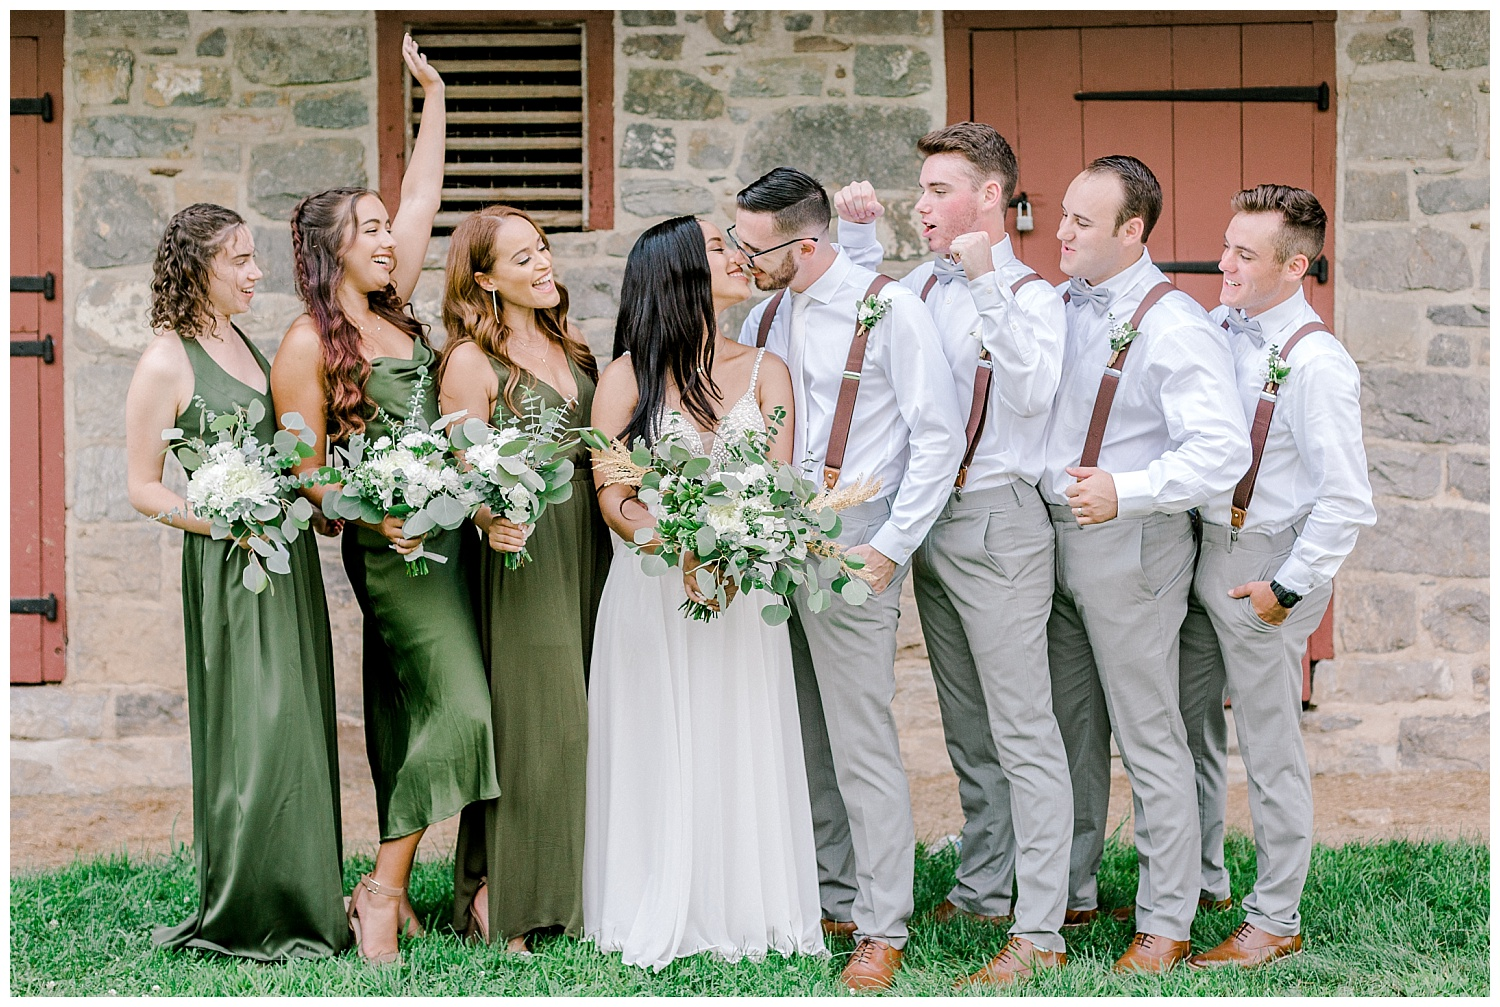 Olive green and white rustic barn wedding at burnside plantation in bethlehem pennsylvania by PA based destination wedding and lifestyle photographer Lytle photography (33).jpg